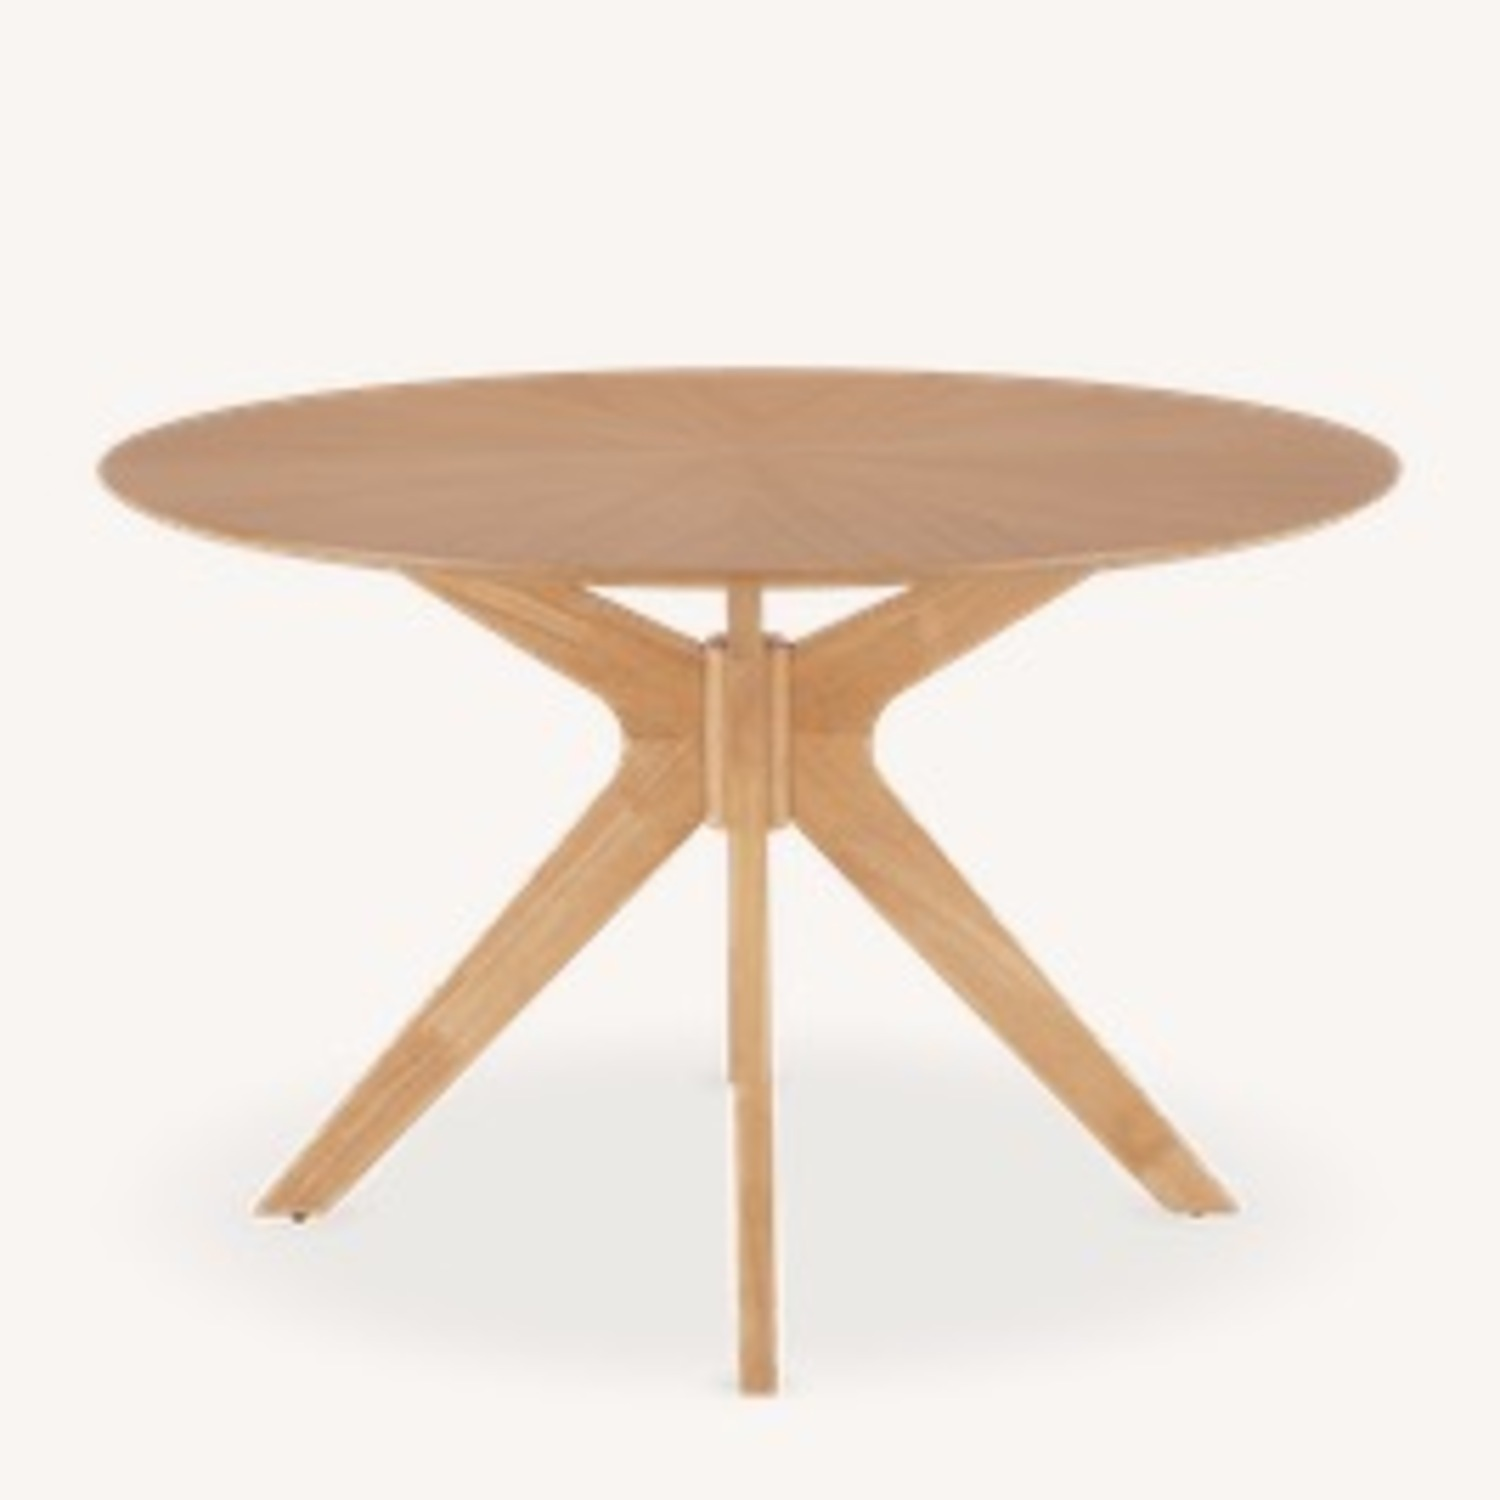 Scandinavian Stlye Dining Table and Chairs - image-1